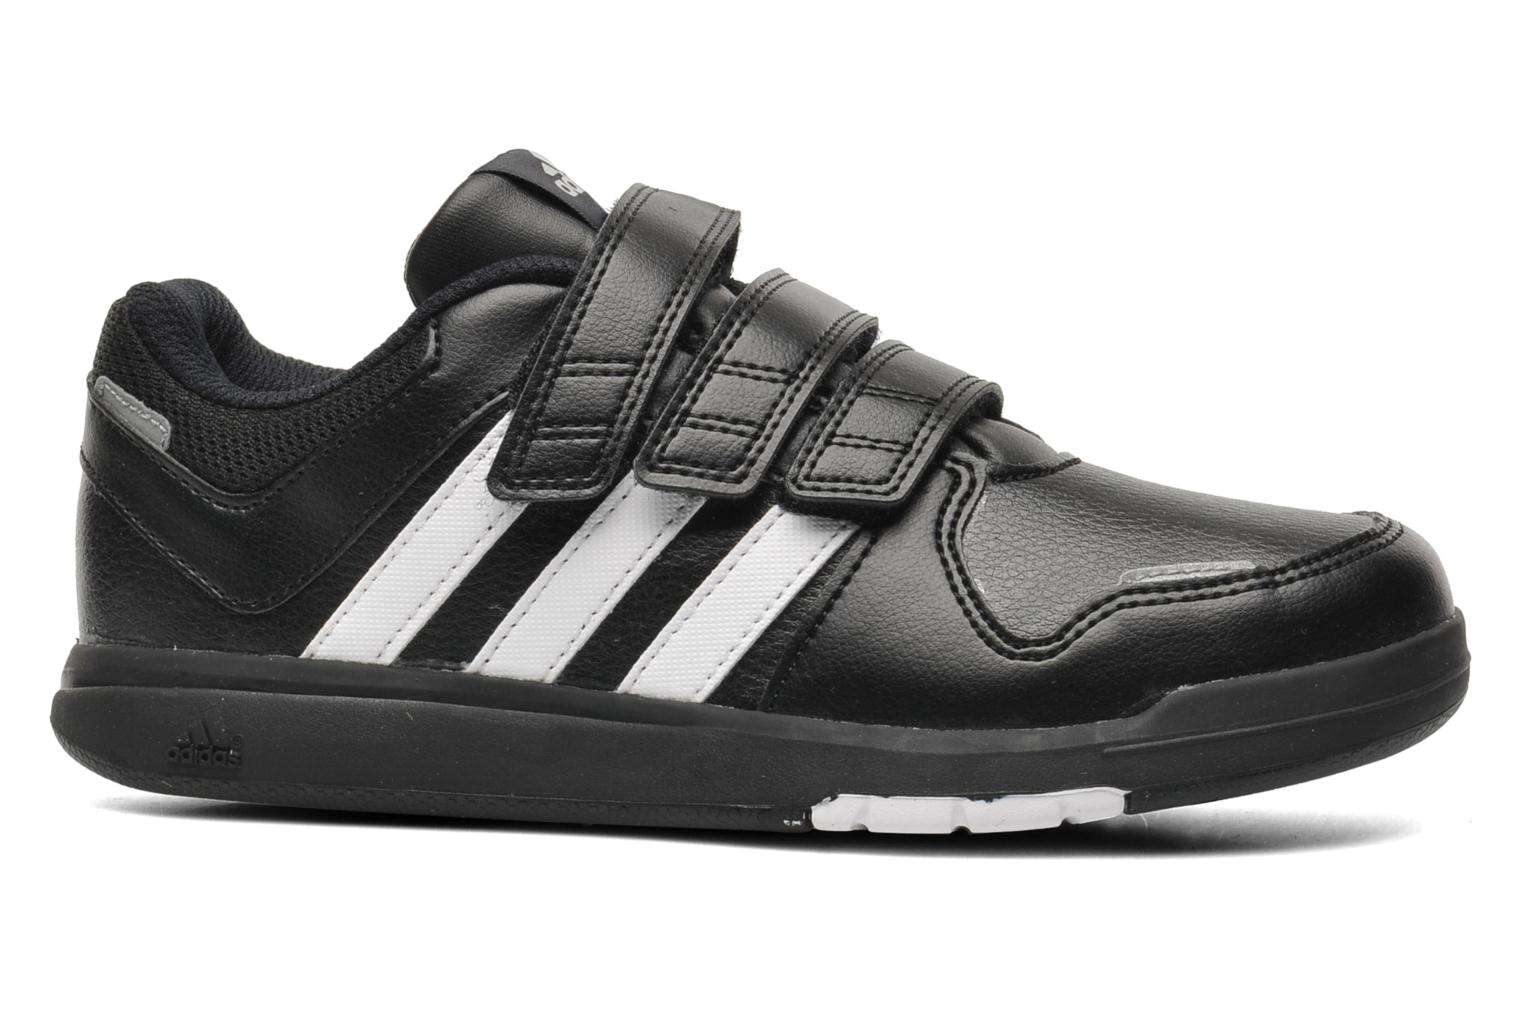 LK Trainer 6 CF K Black 1Running WhiteMetallic Silver